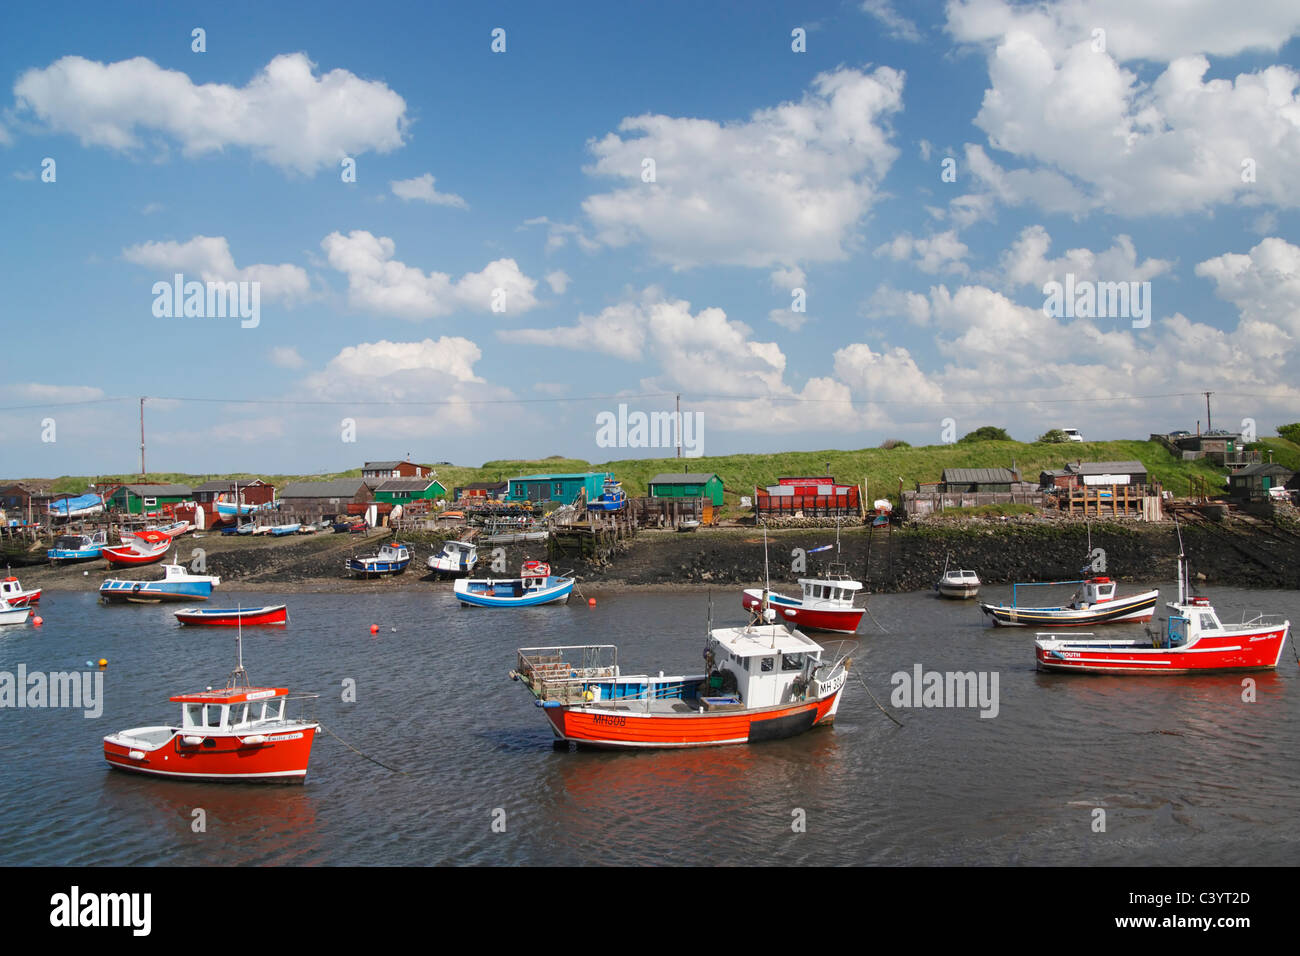 Fishing boats in Paddy's Hole, South Gare, Redcar, Cleveland, North East England, UK - Stock Image